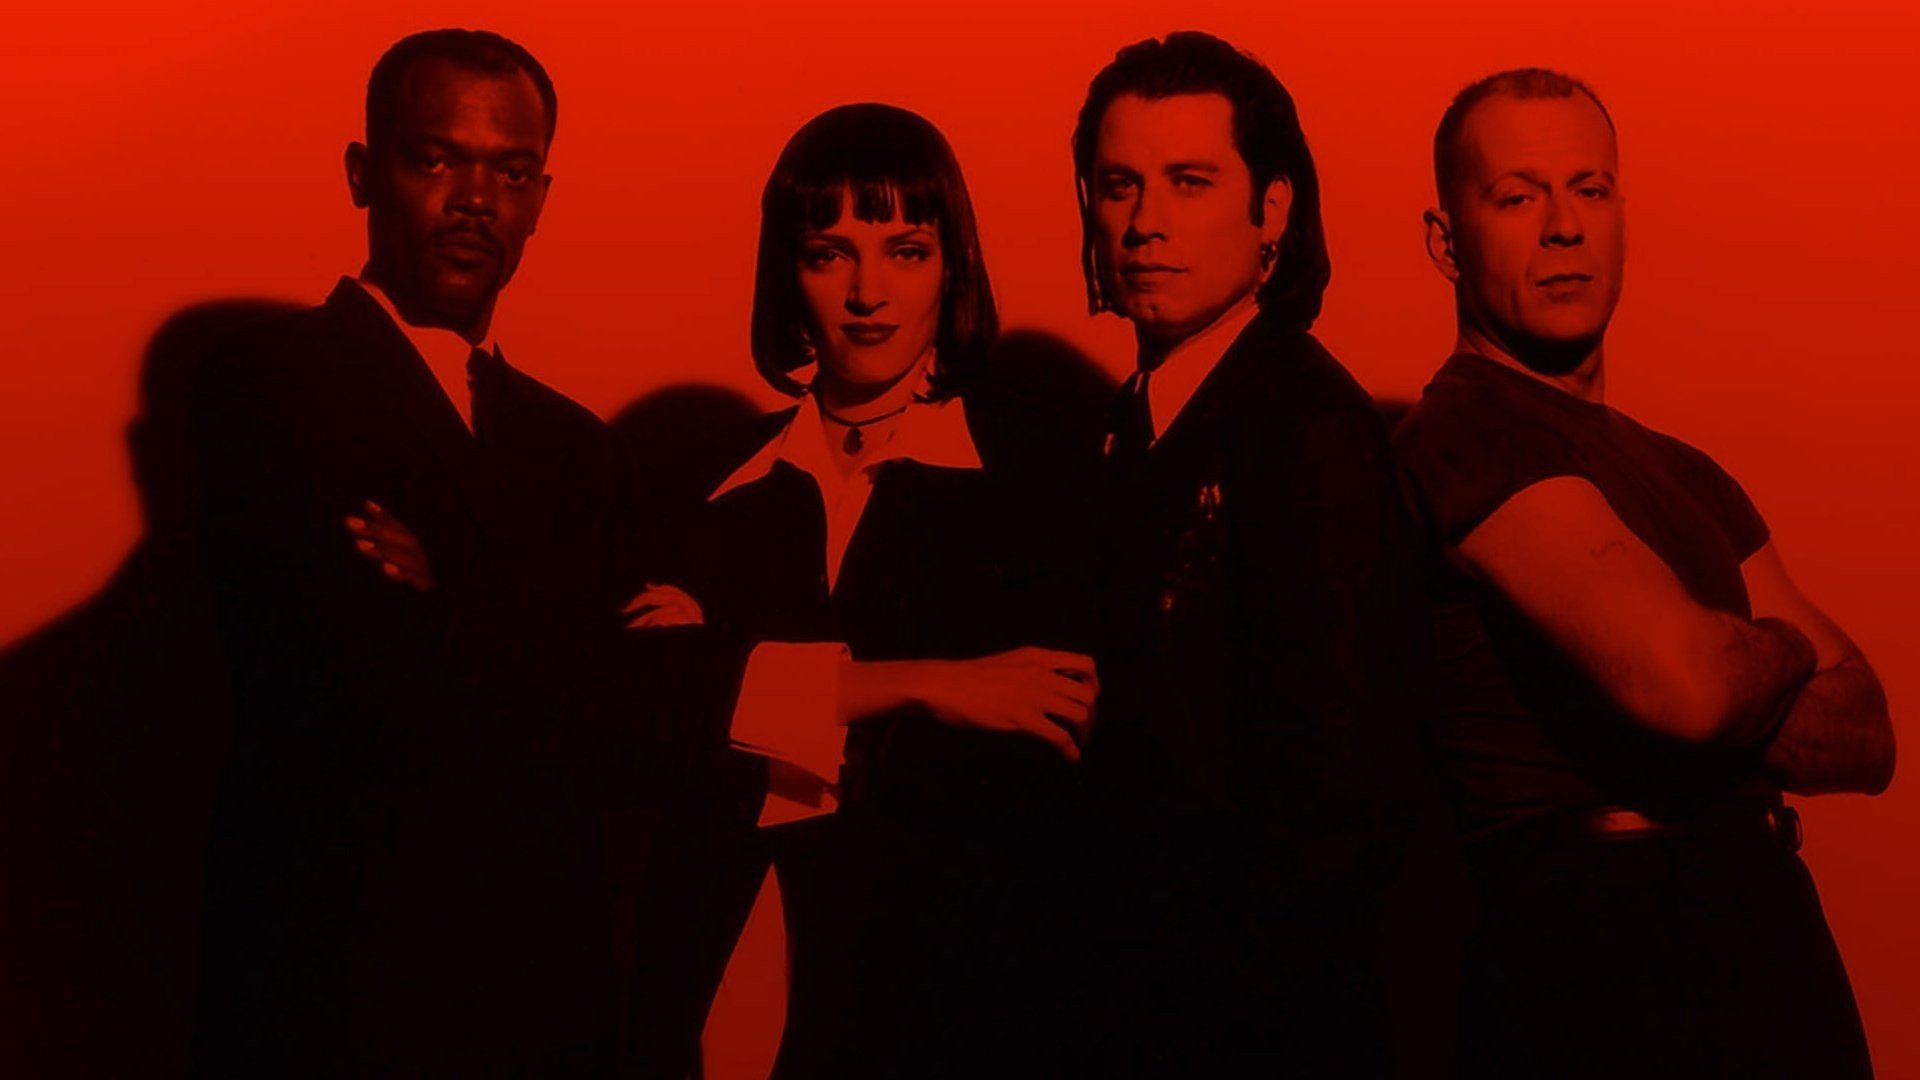 Free Pulp Fiction High Quality Wallpaper Id 158117 For Hd 1080p Pc